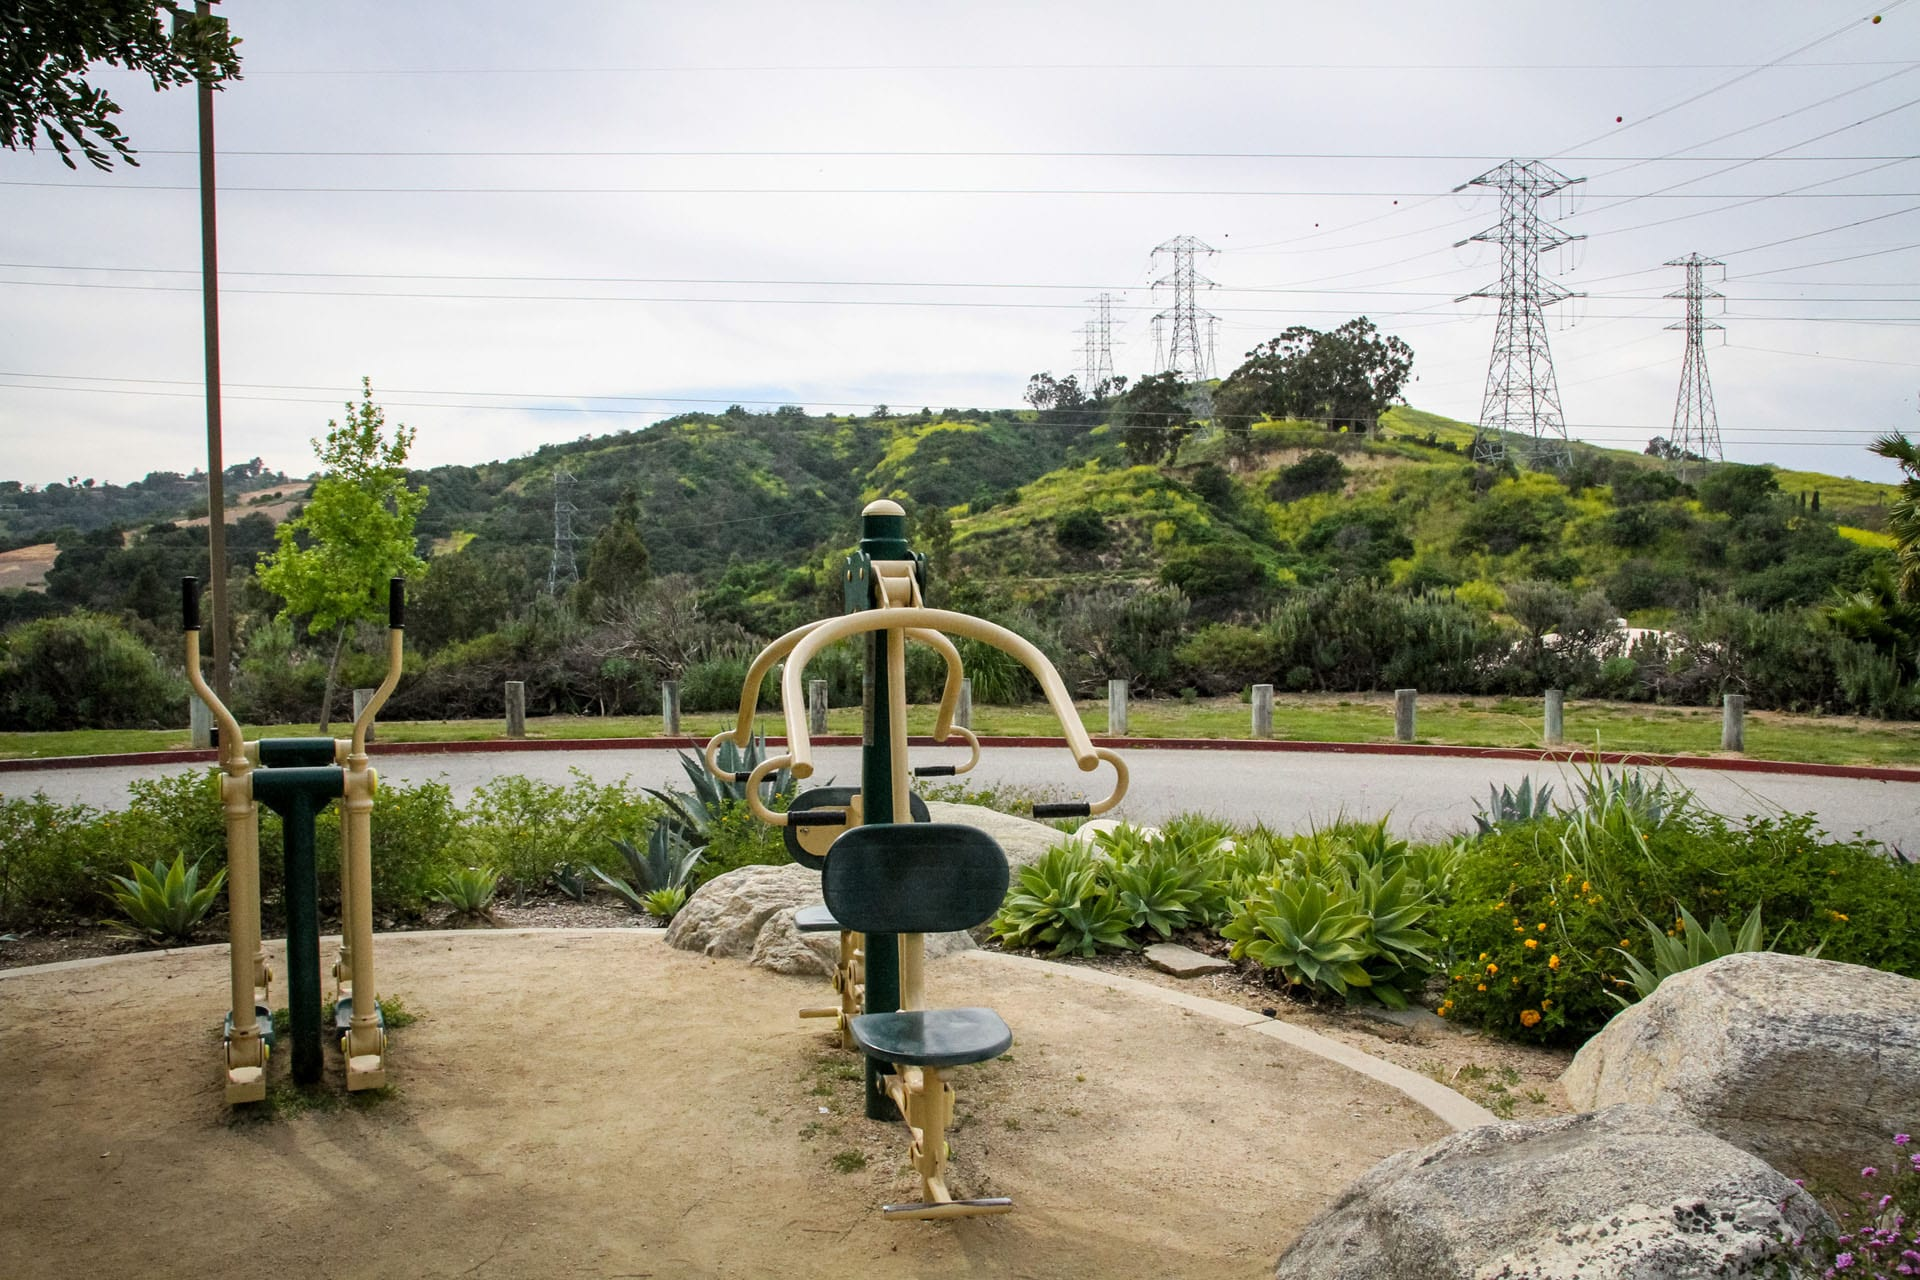 Exercise equipment over looking a walking path and green hills